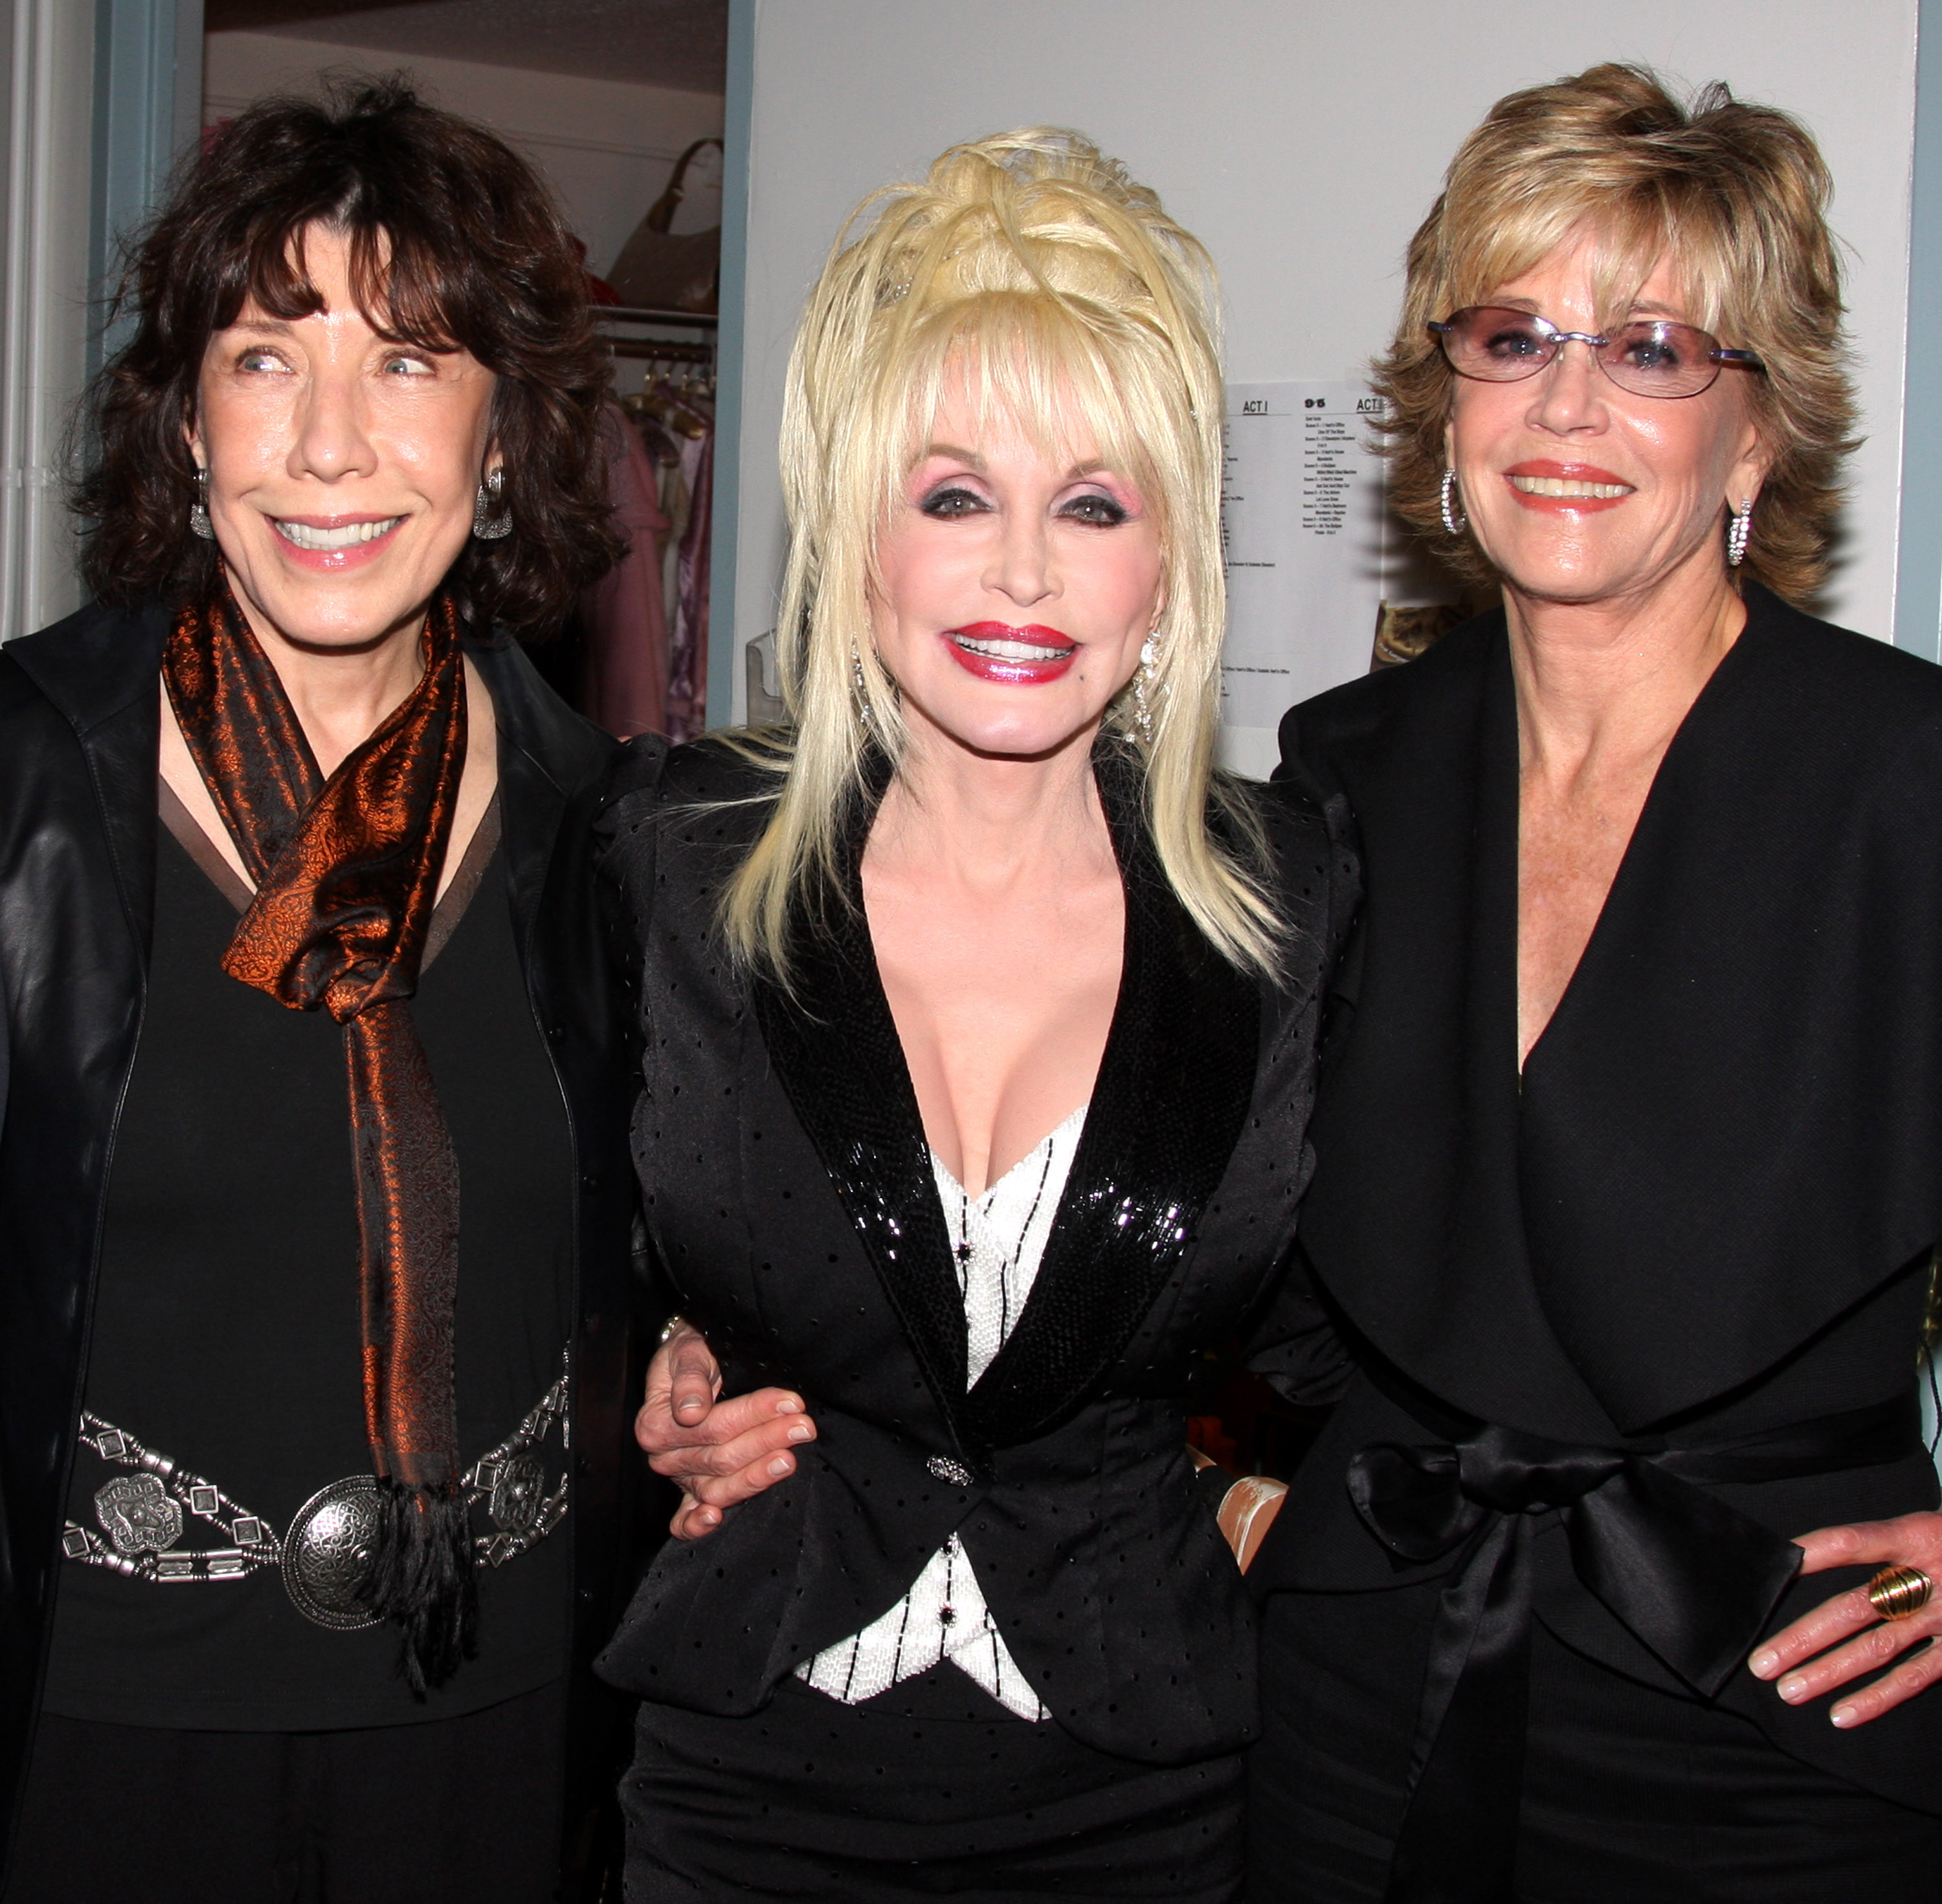 """9 to 5: The Musical"" Opening Night In Los Angeles"